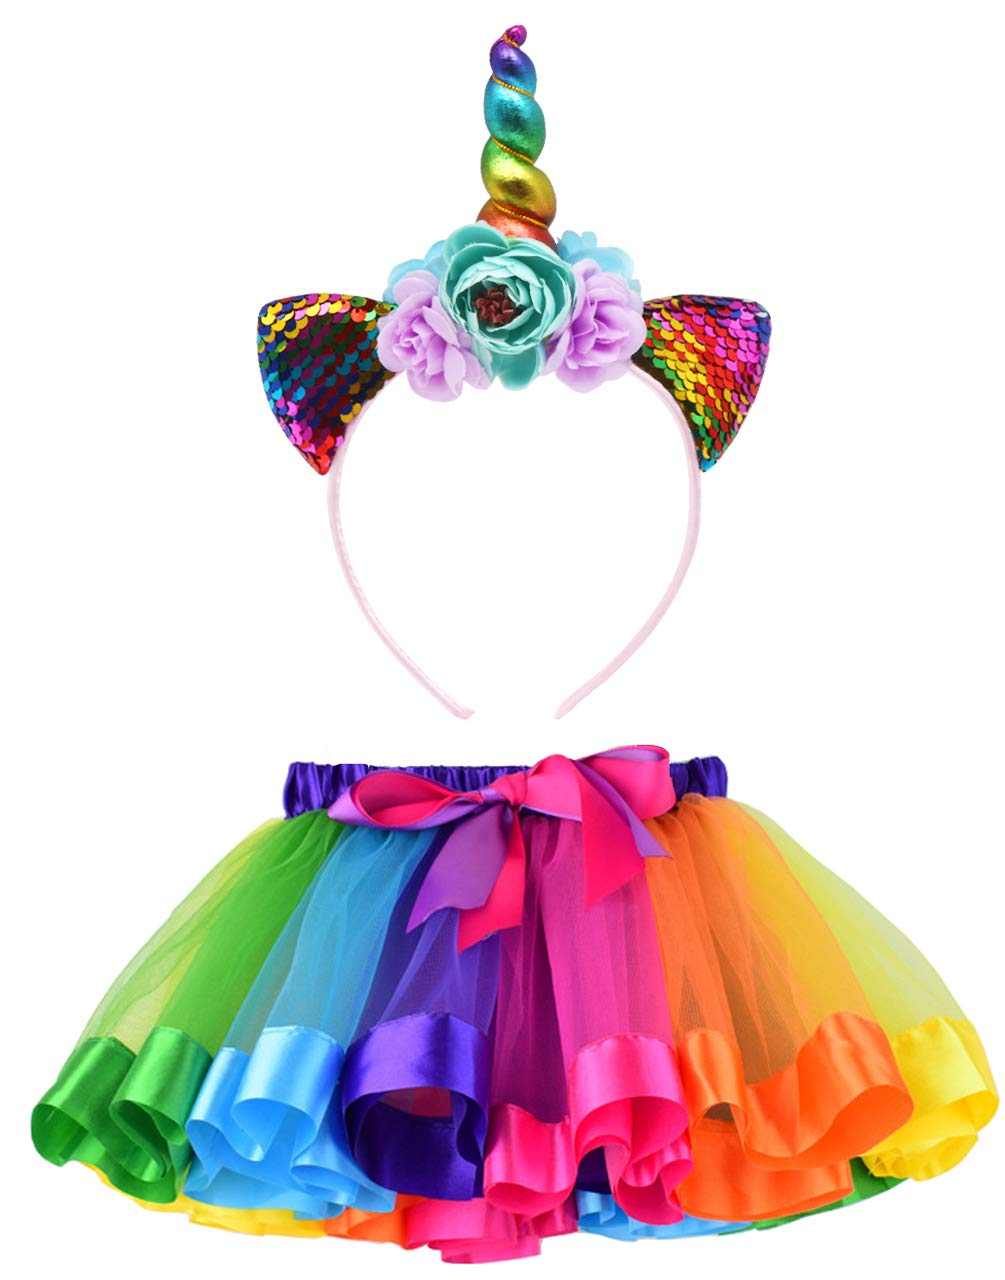 LYLKD Little Girls Layered Rainbow Tutu Skirts with Unicorn Horn Headband (U-Rainbow, L,4-8 Years) by LYLKD